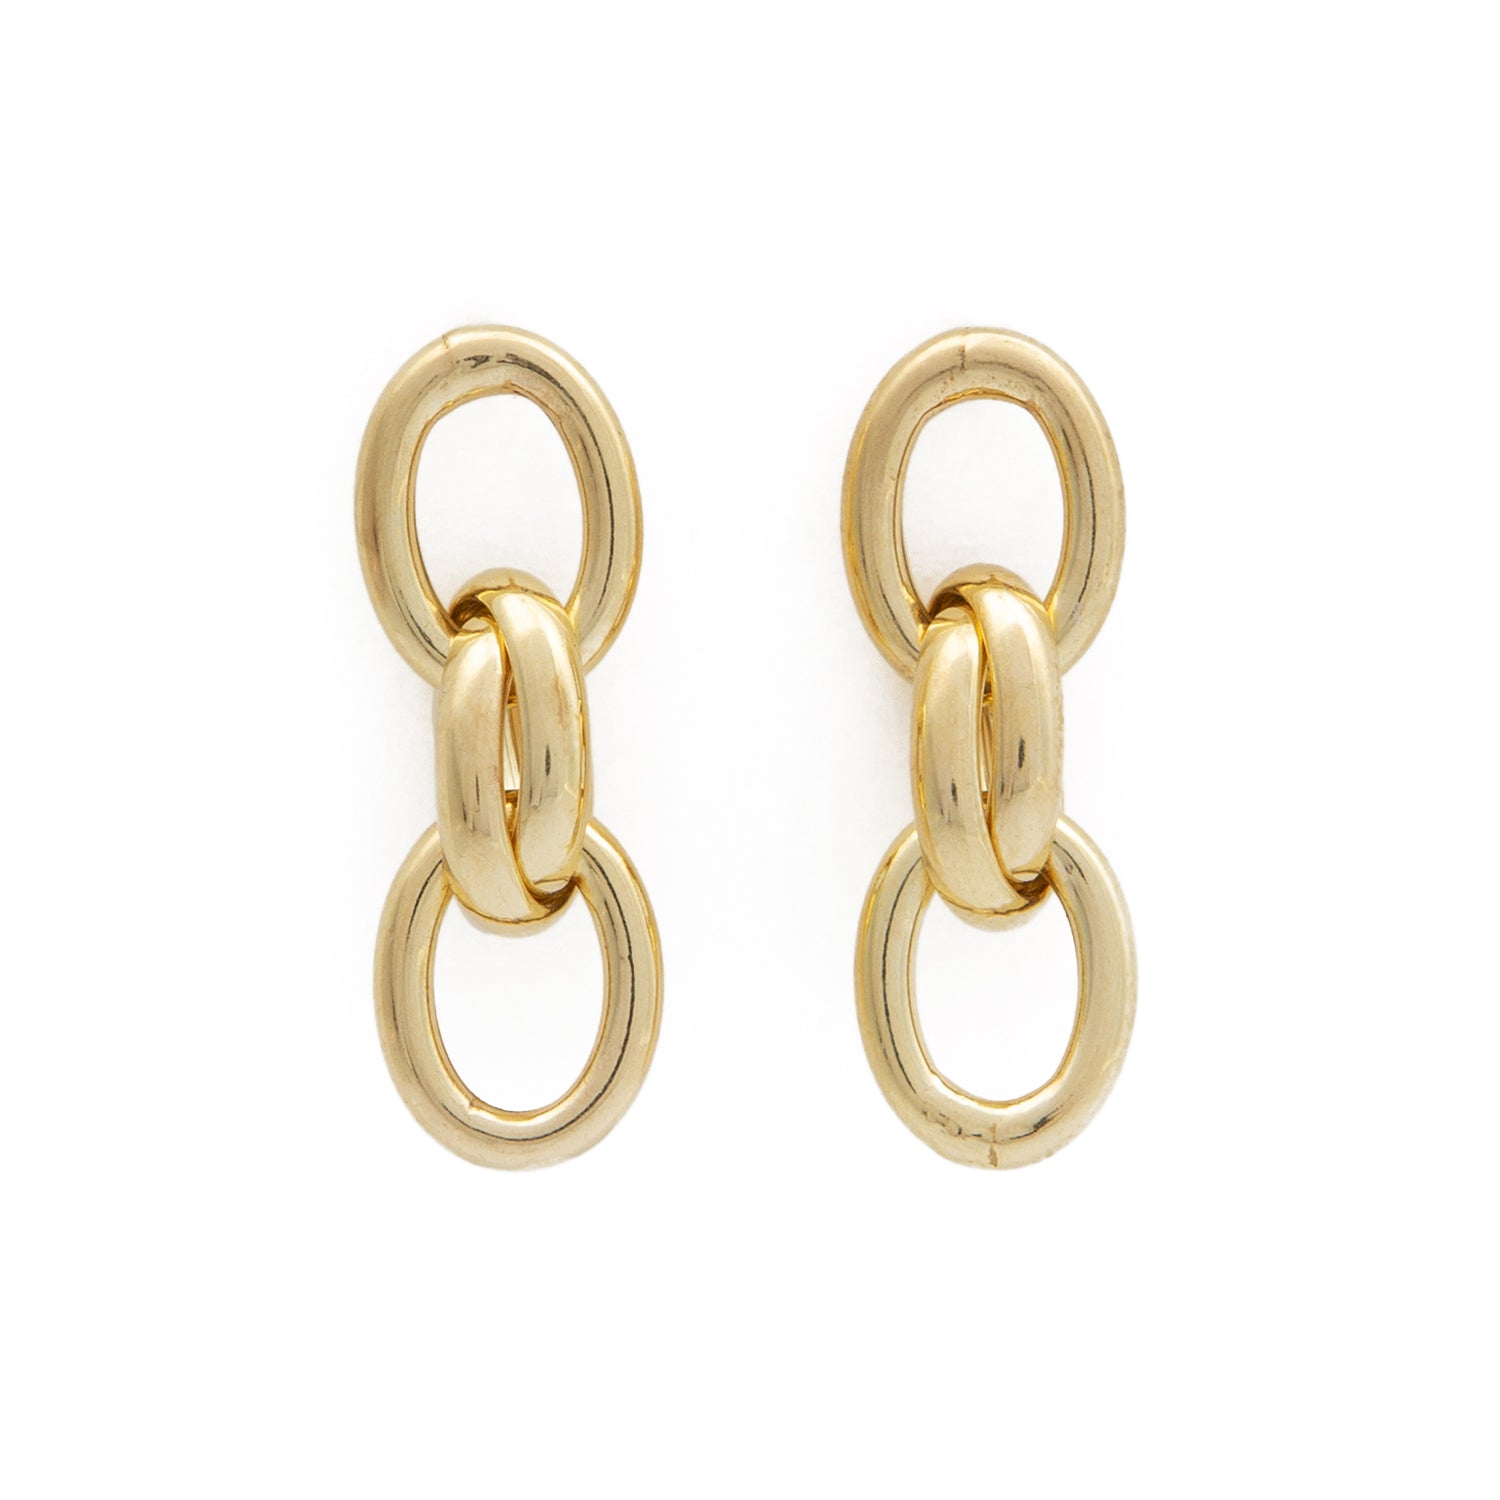 Chain Earrings - Gold Plated